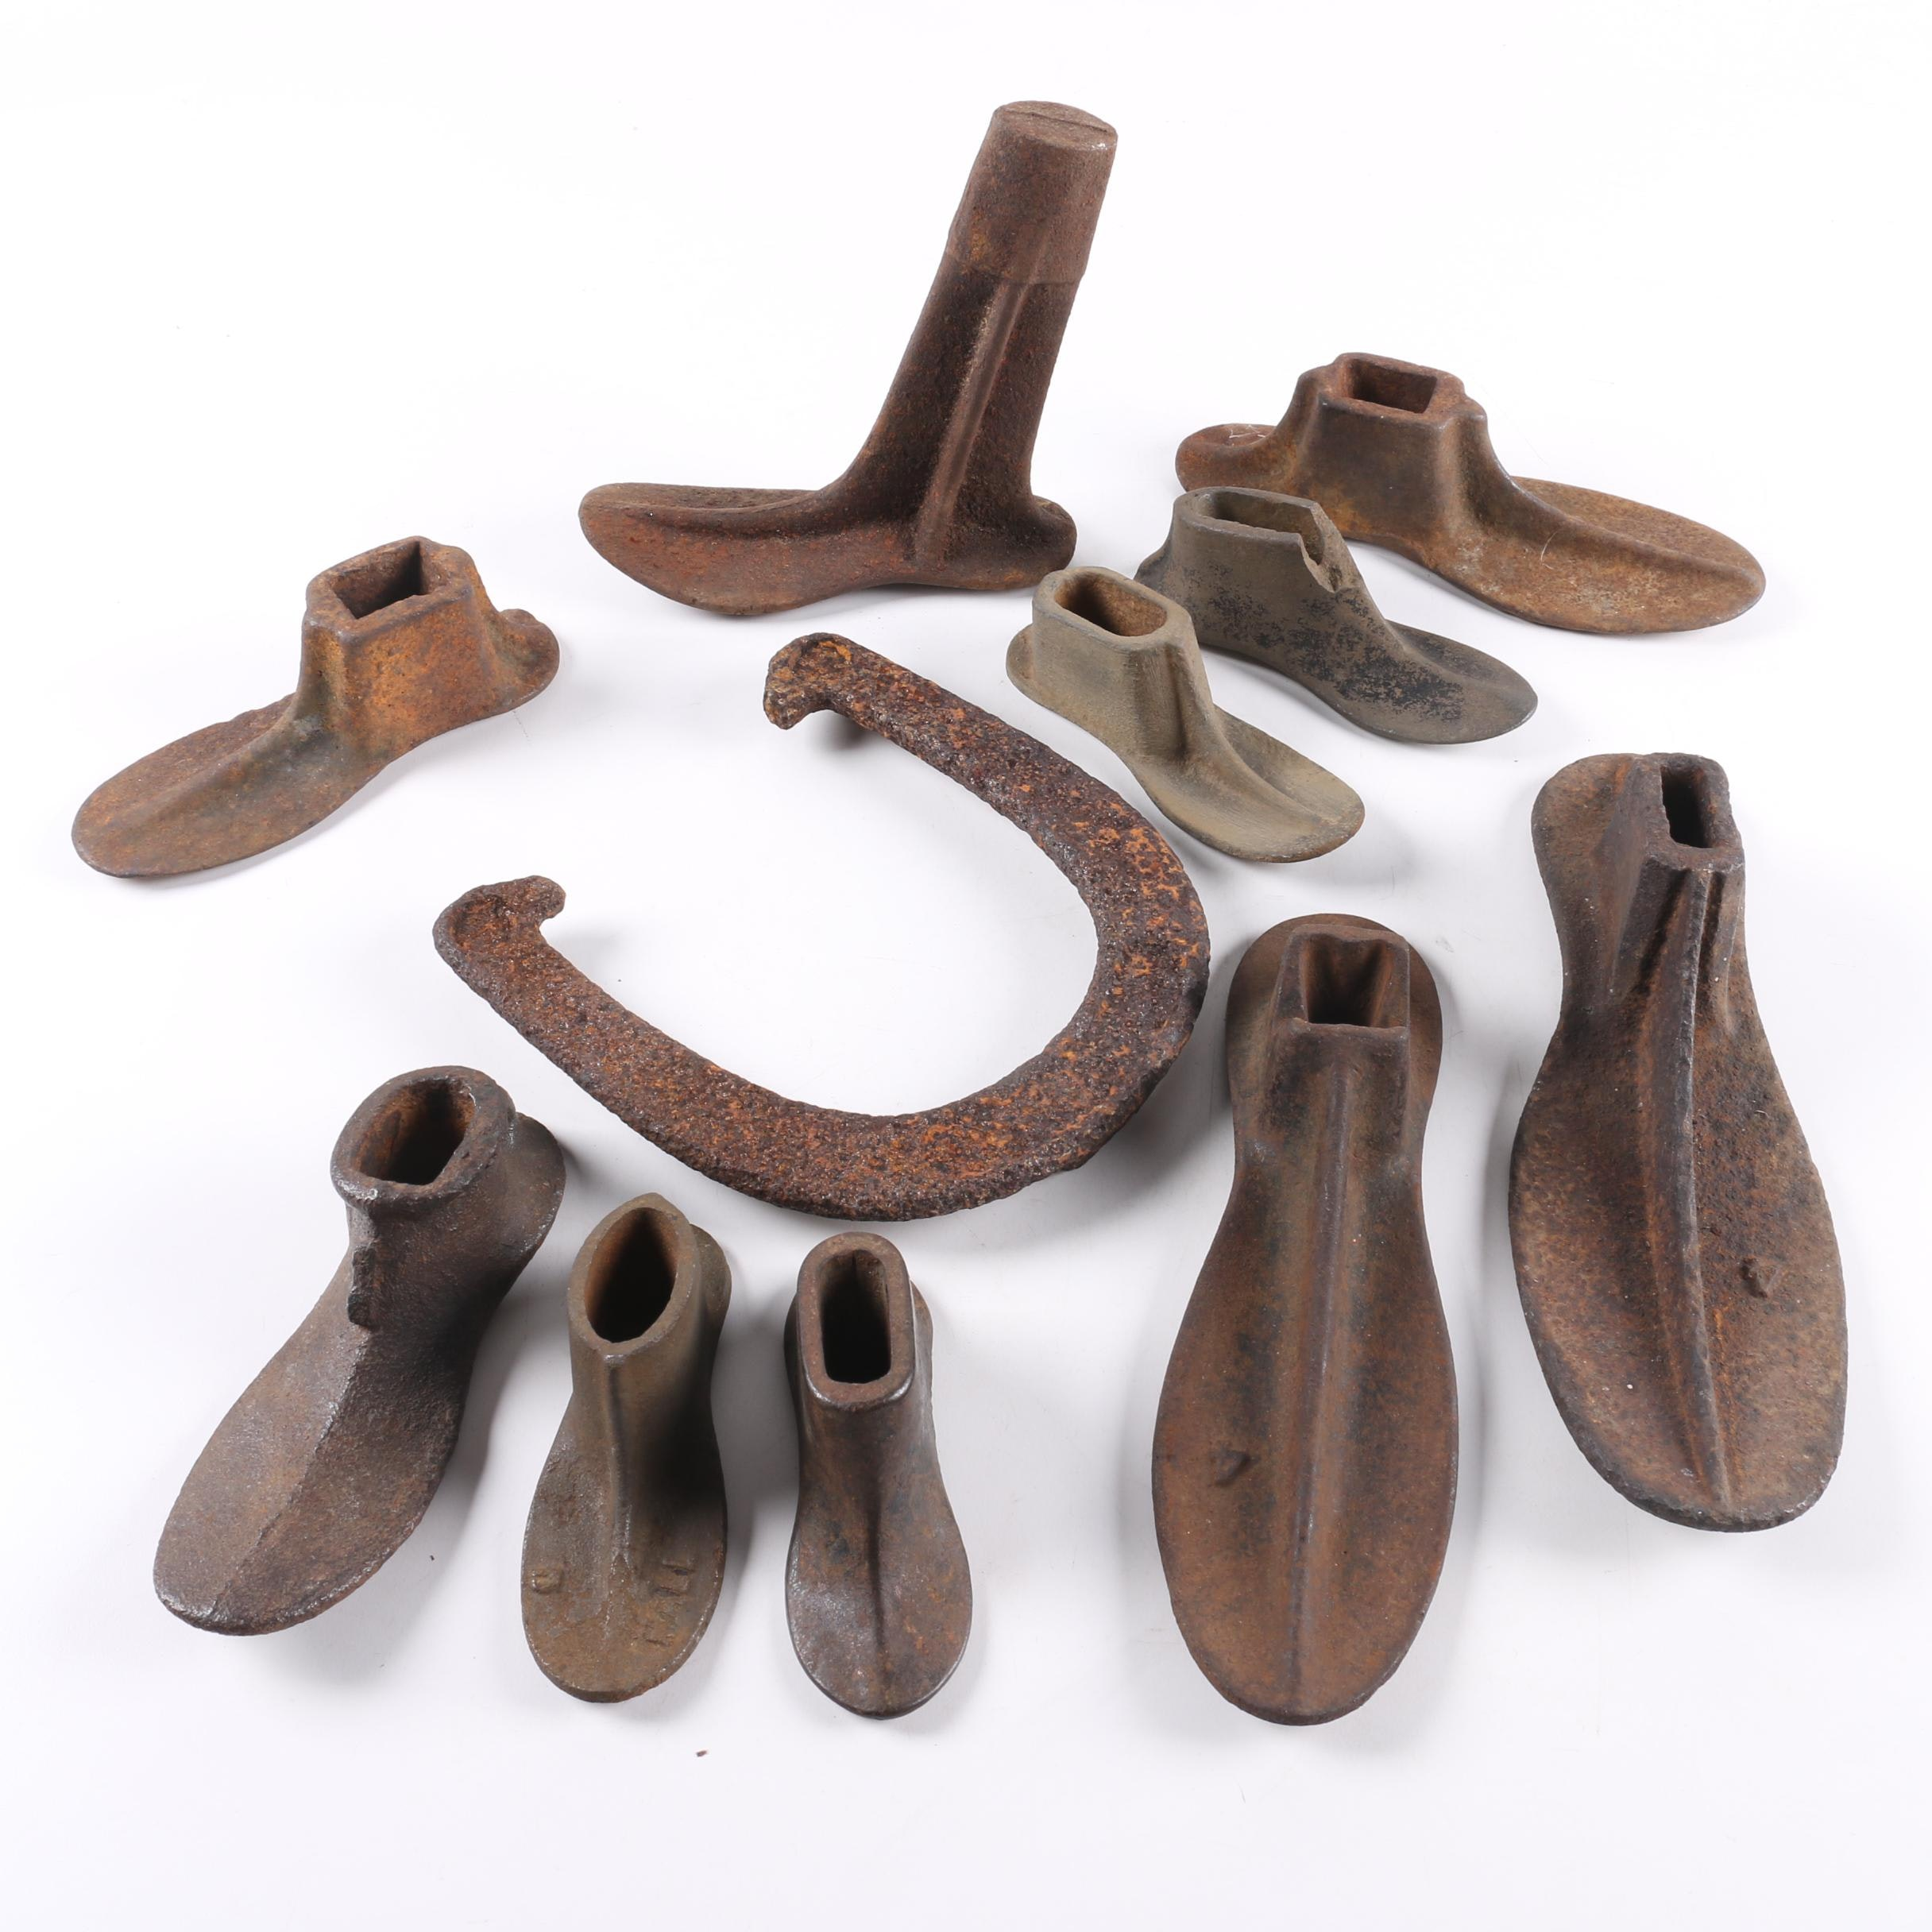 Cobblers Shoe Forms and Horse Shoe